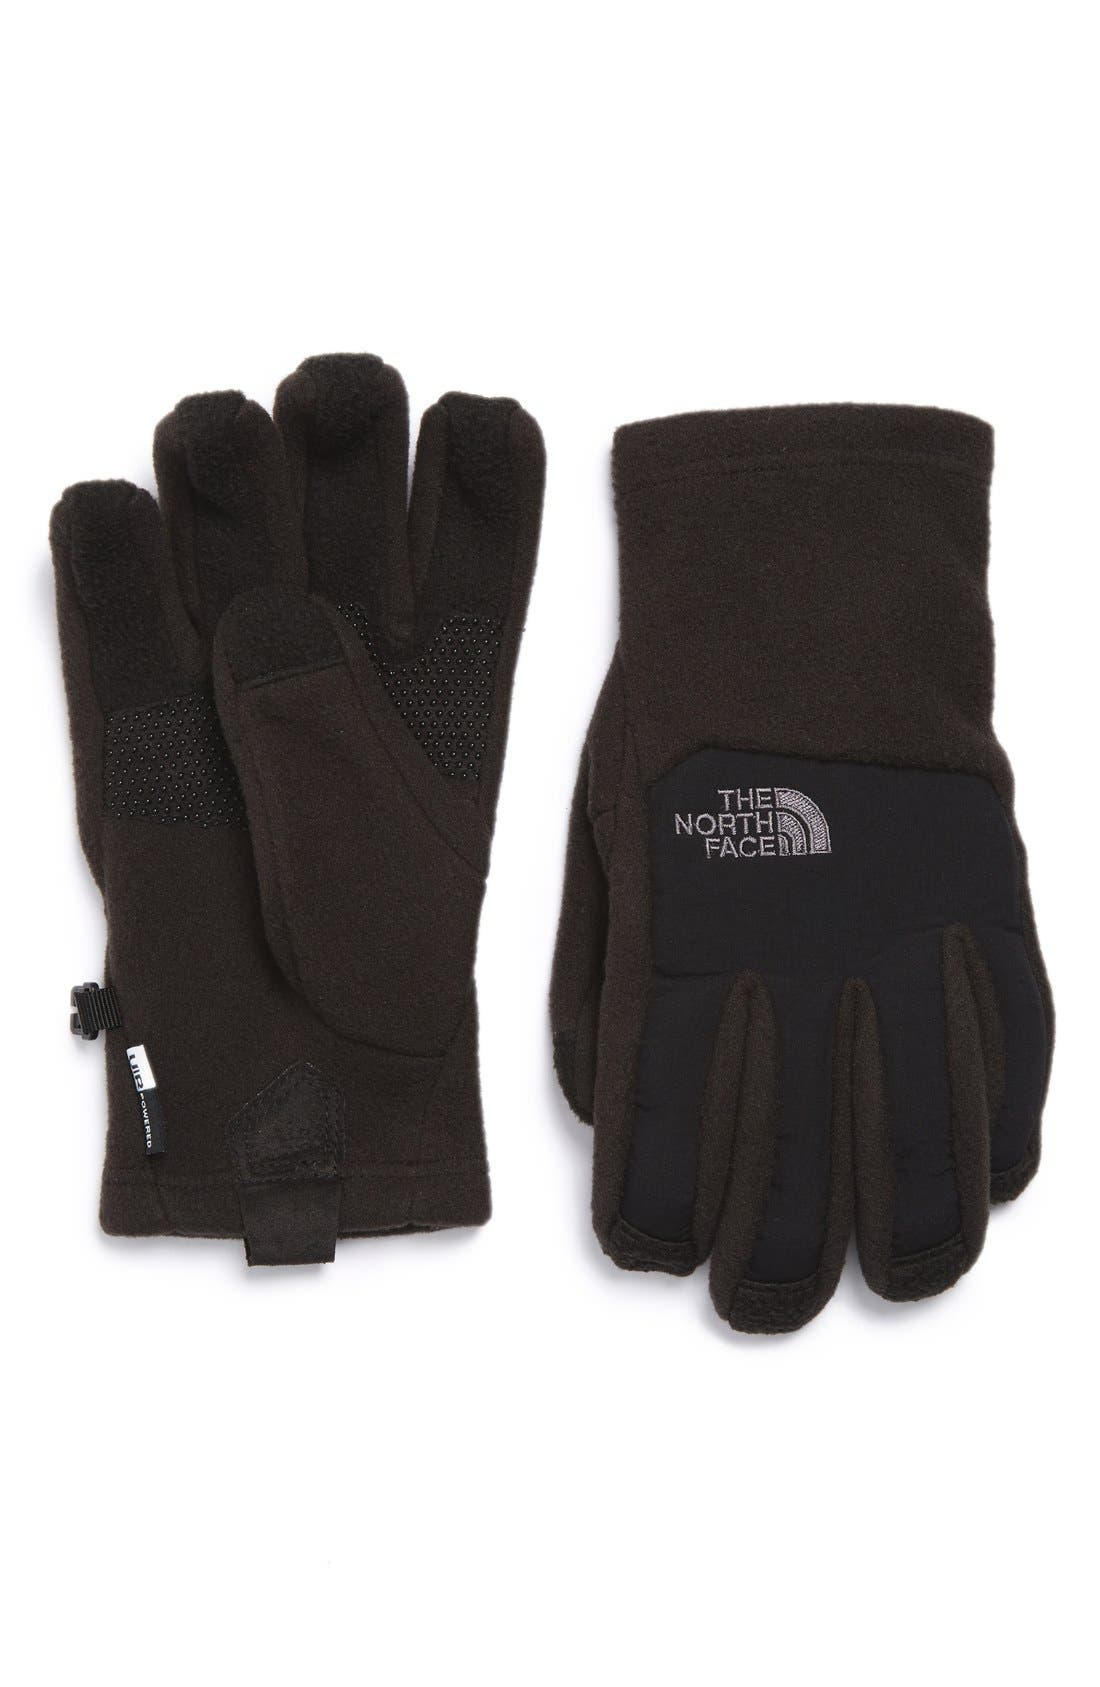 Alternate Image 1 Selected - The North Face Denali E-Tip Fleece Tech Gloves (Boys)